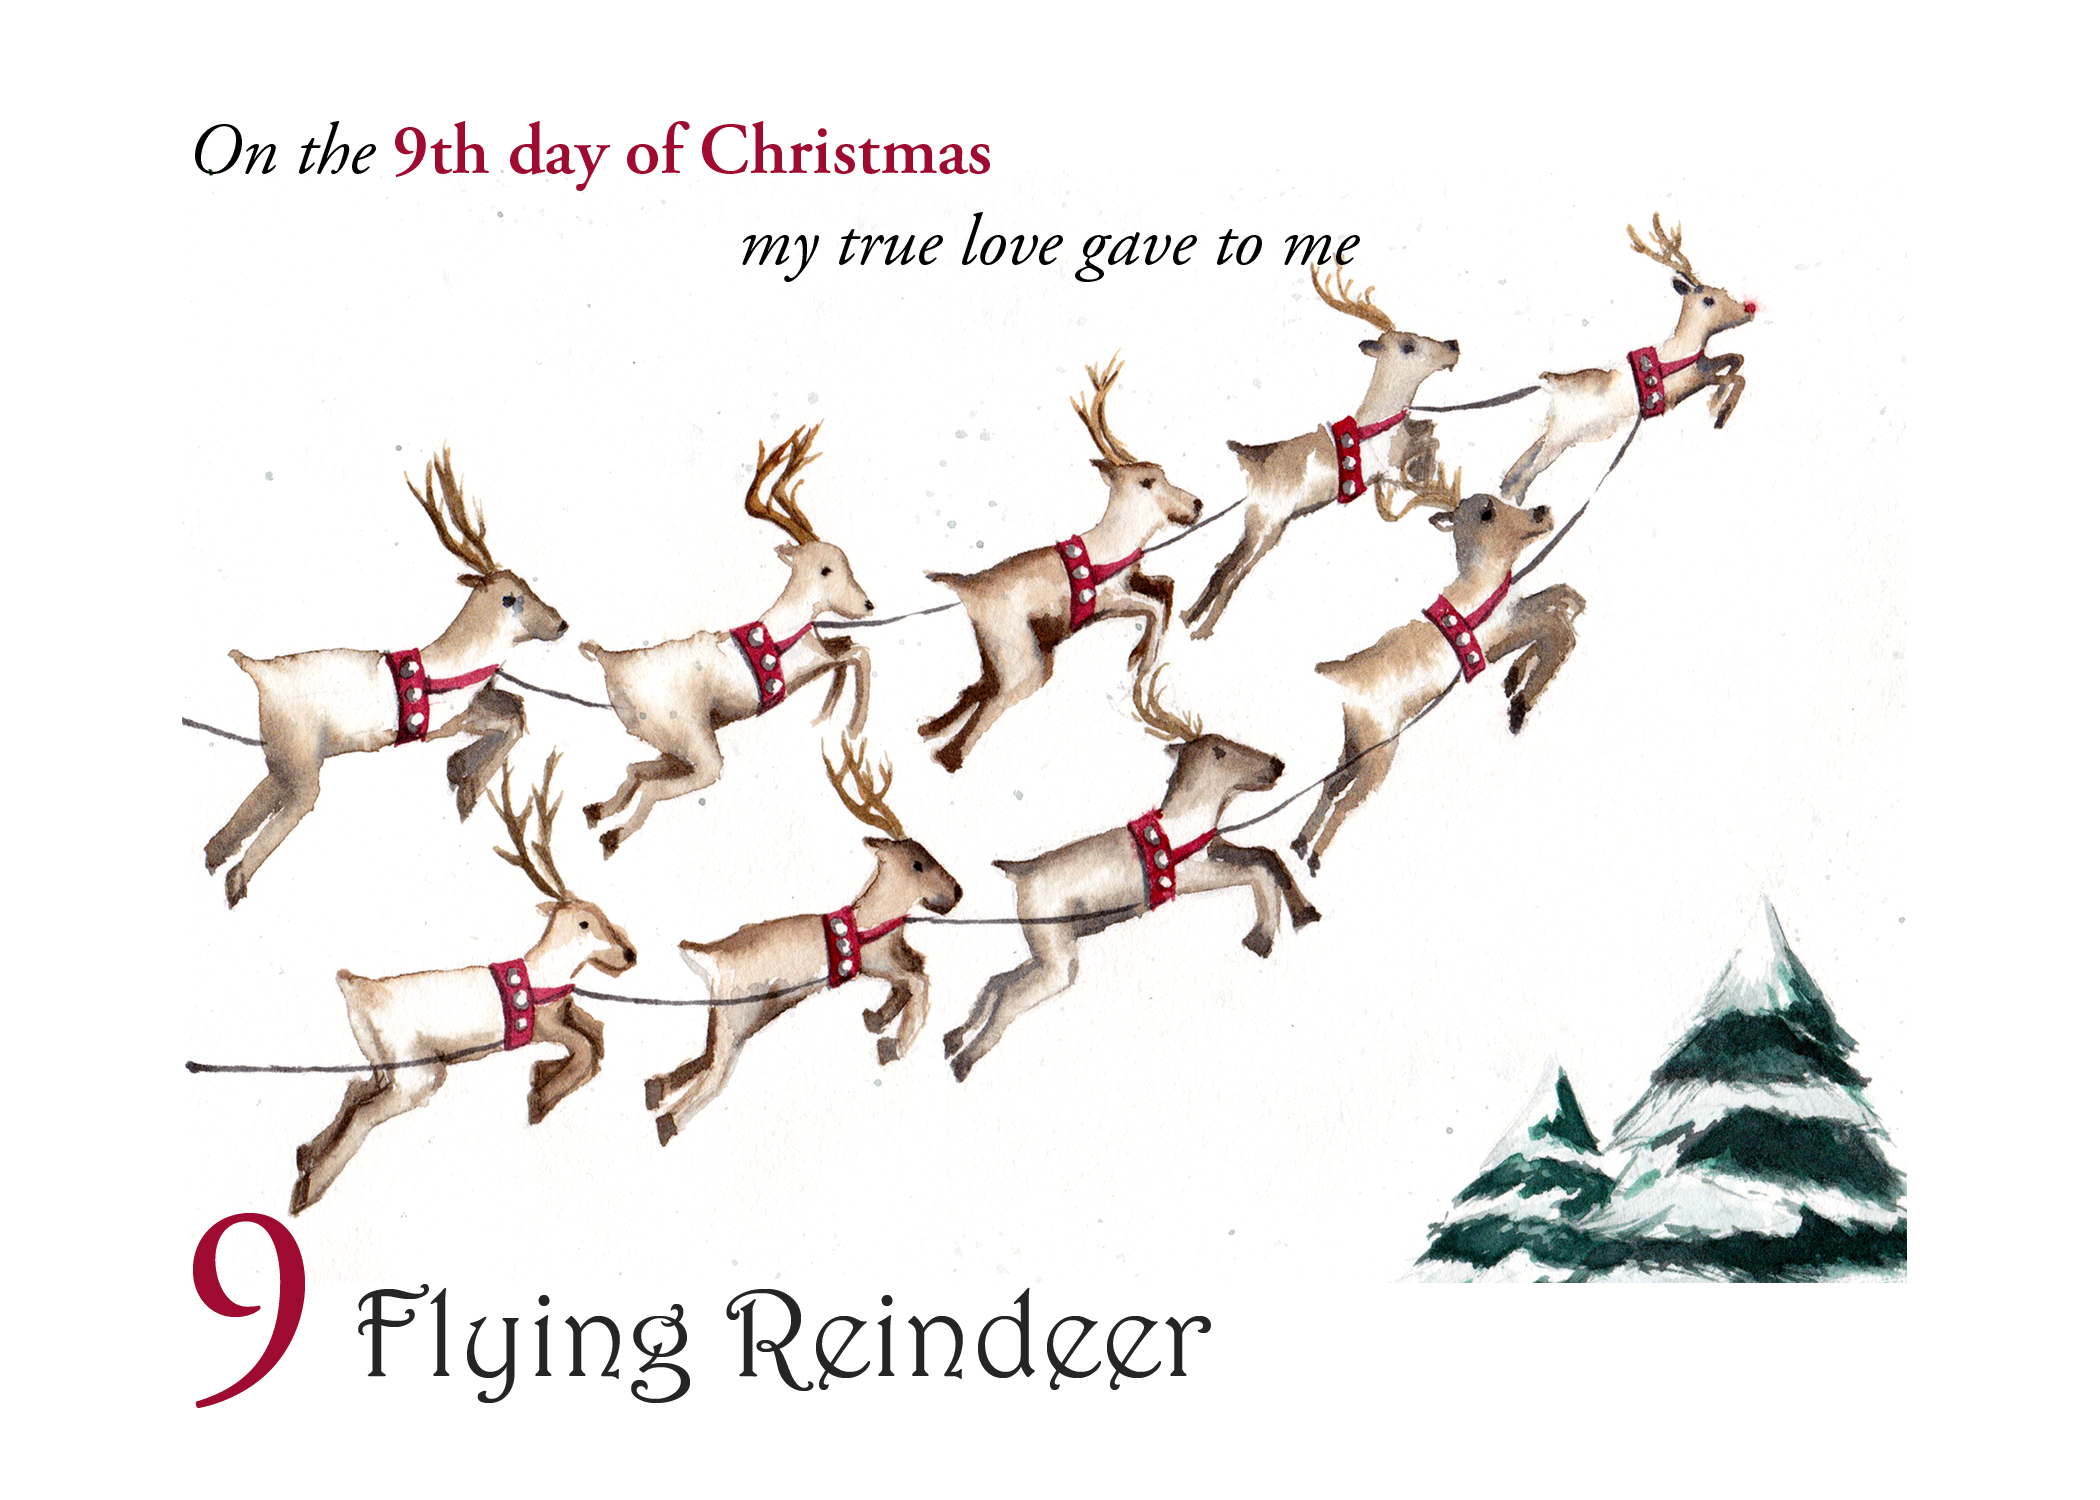 The 9th folded card in a set of the 12 Days of Christmas, 9 Flying Reindeer